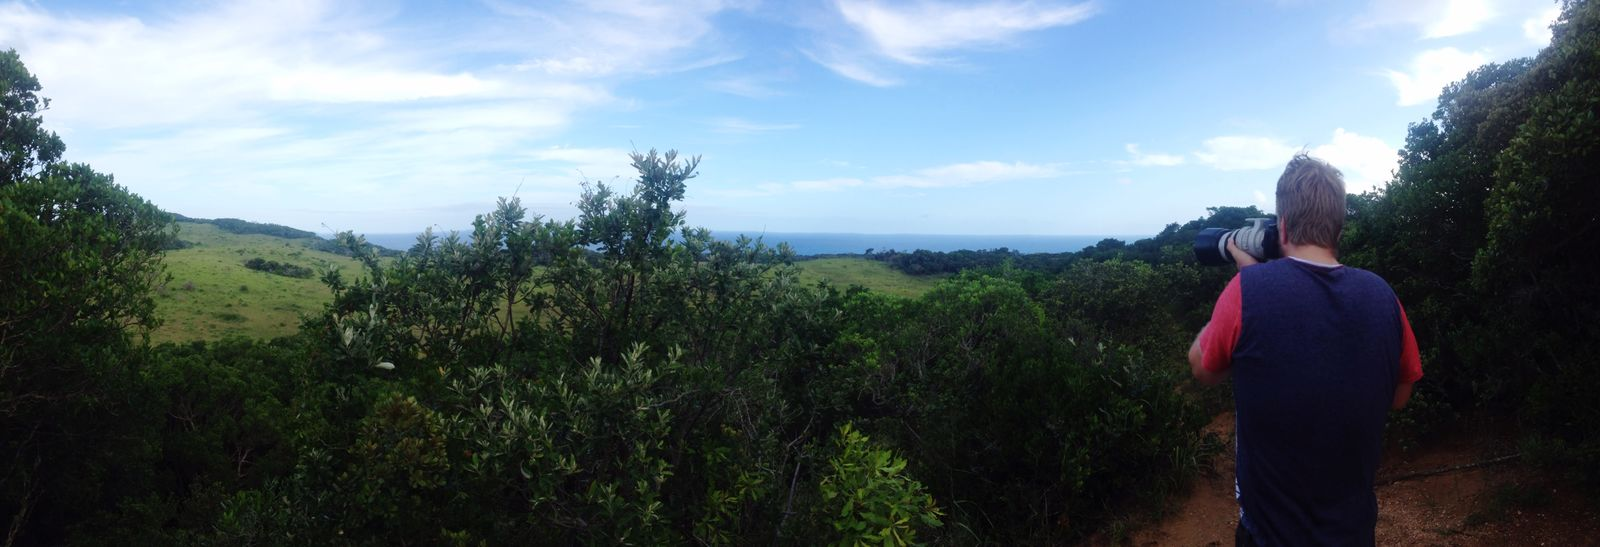 Taking Photos View Scenic Lookout St Lucia South Africa Kzn Keith No Filter Relaxing Holiday